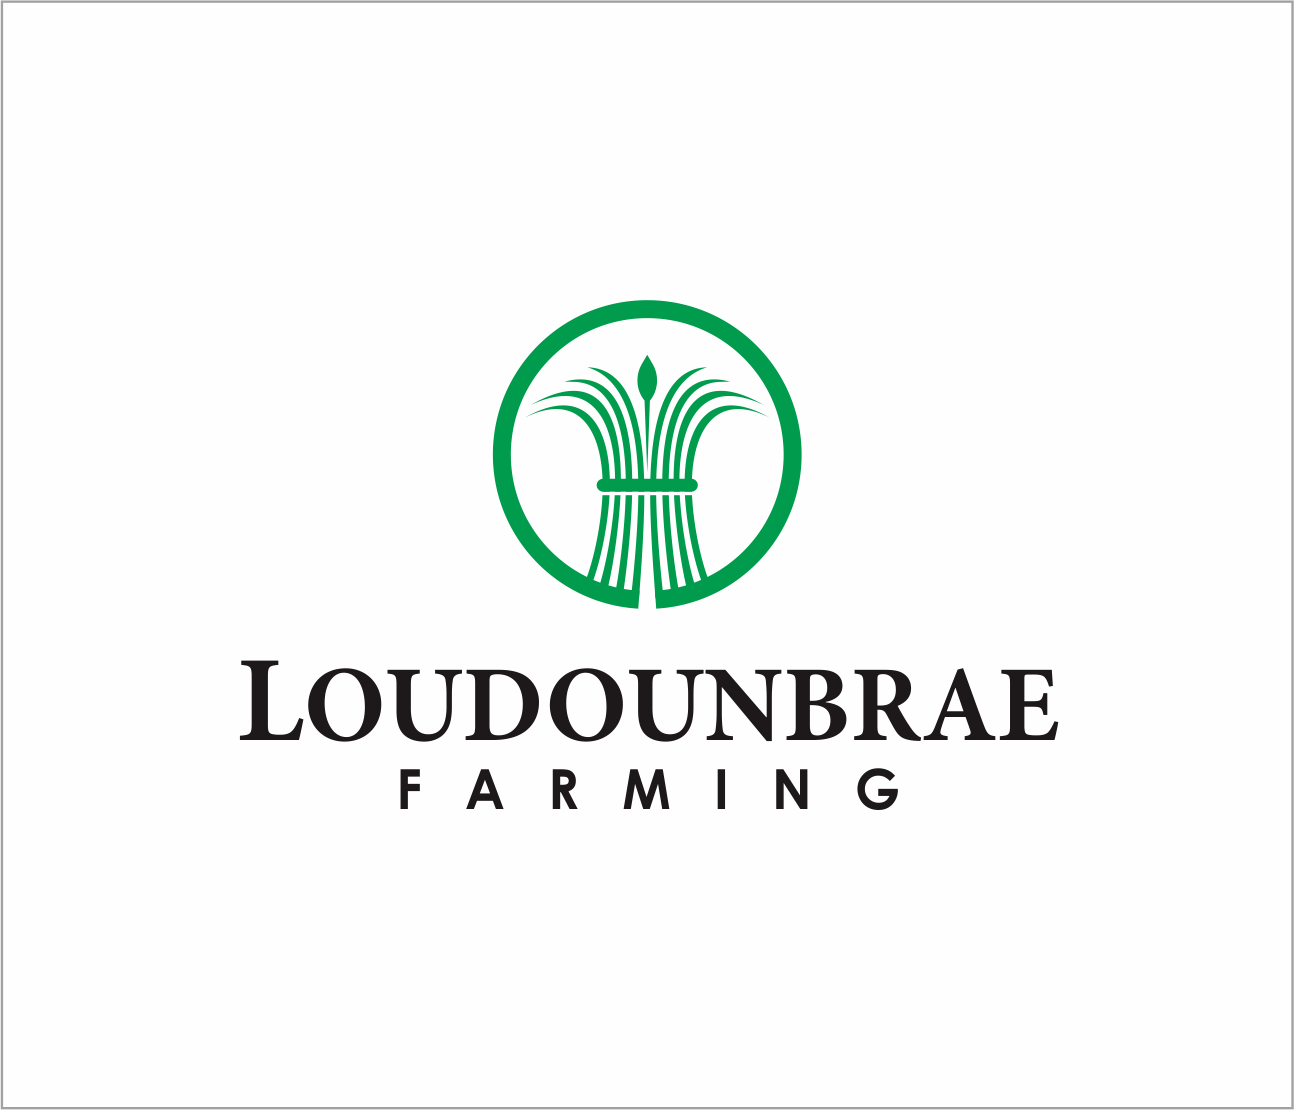 Logo Design by Armada Jamaluddin - Entry No. 80 in the Logo Design Contest Creative Logo Design for Loudounbrae Farming.